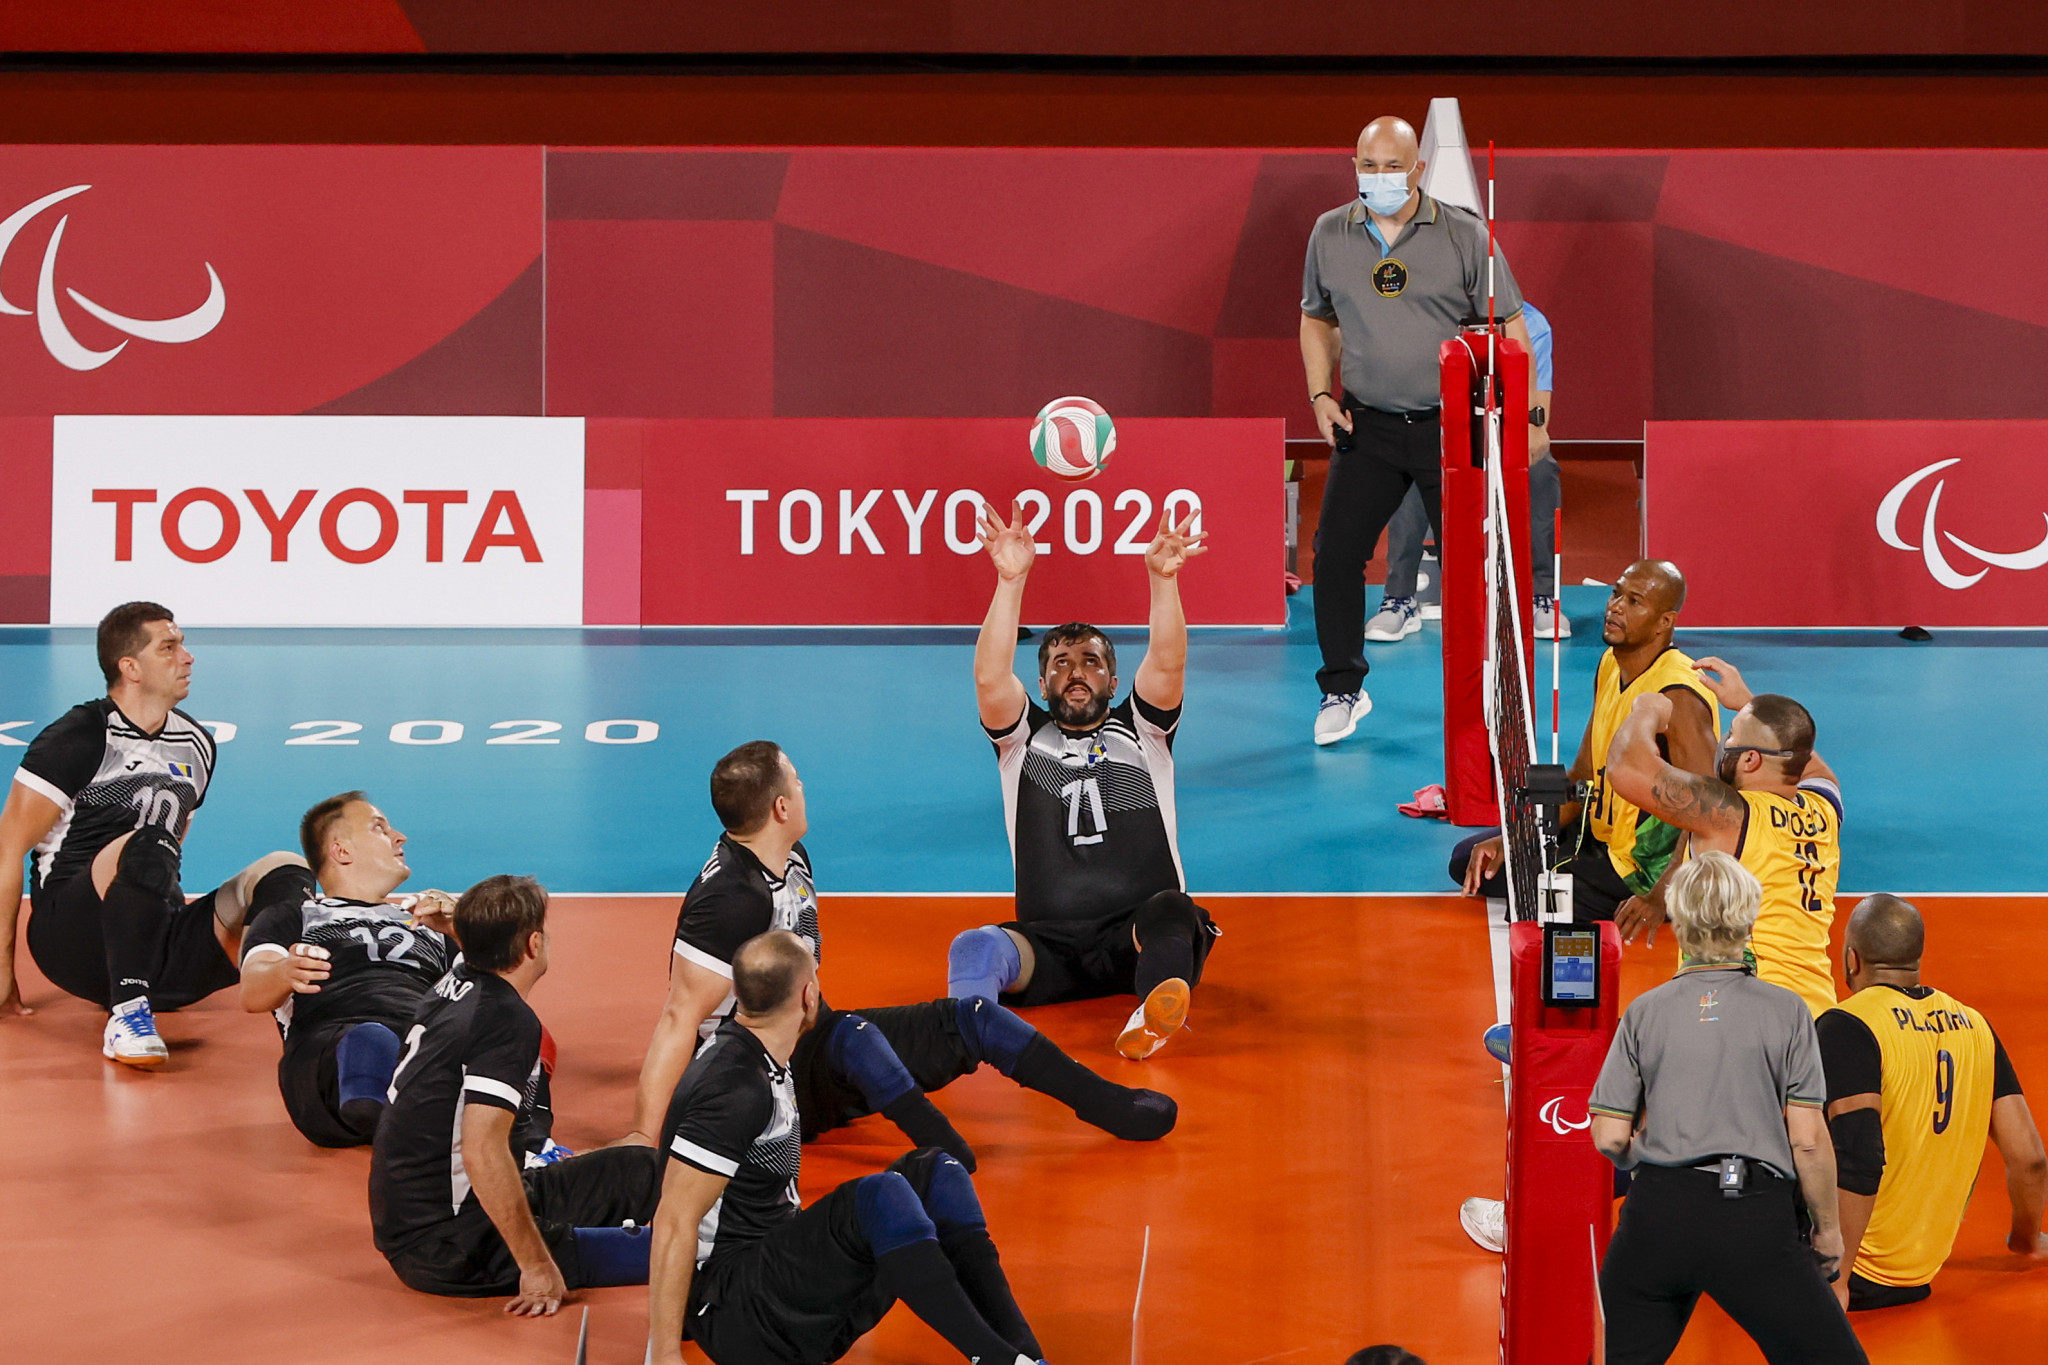 Russia among nations to finish men's group stage with three wins at European Sitting Volleyball Championships